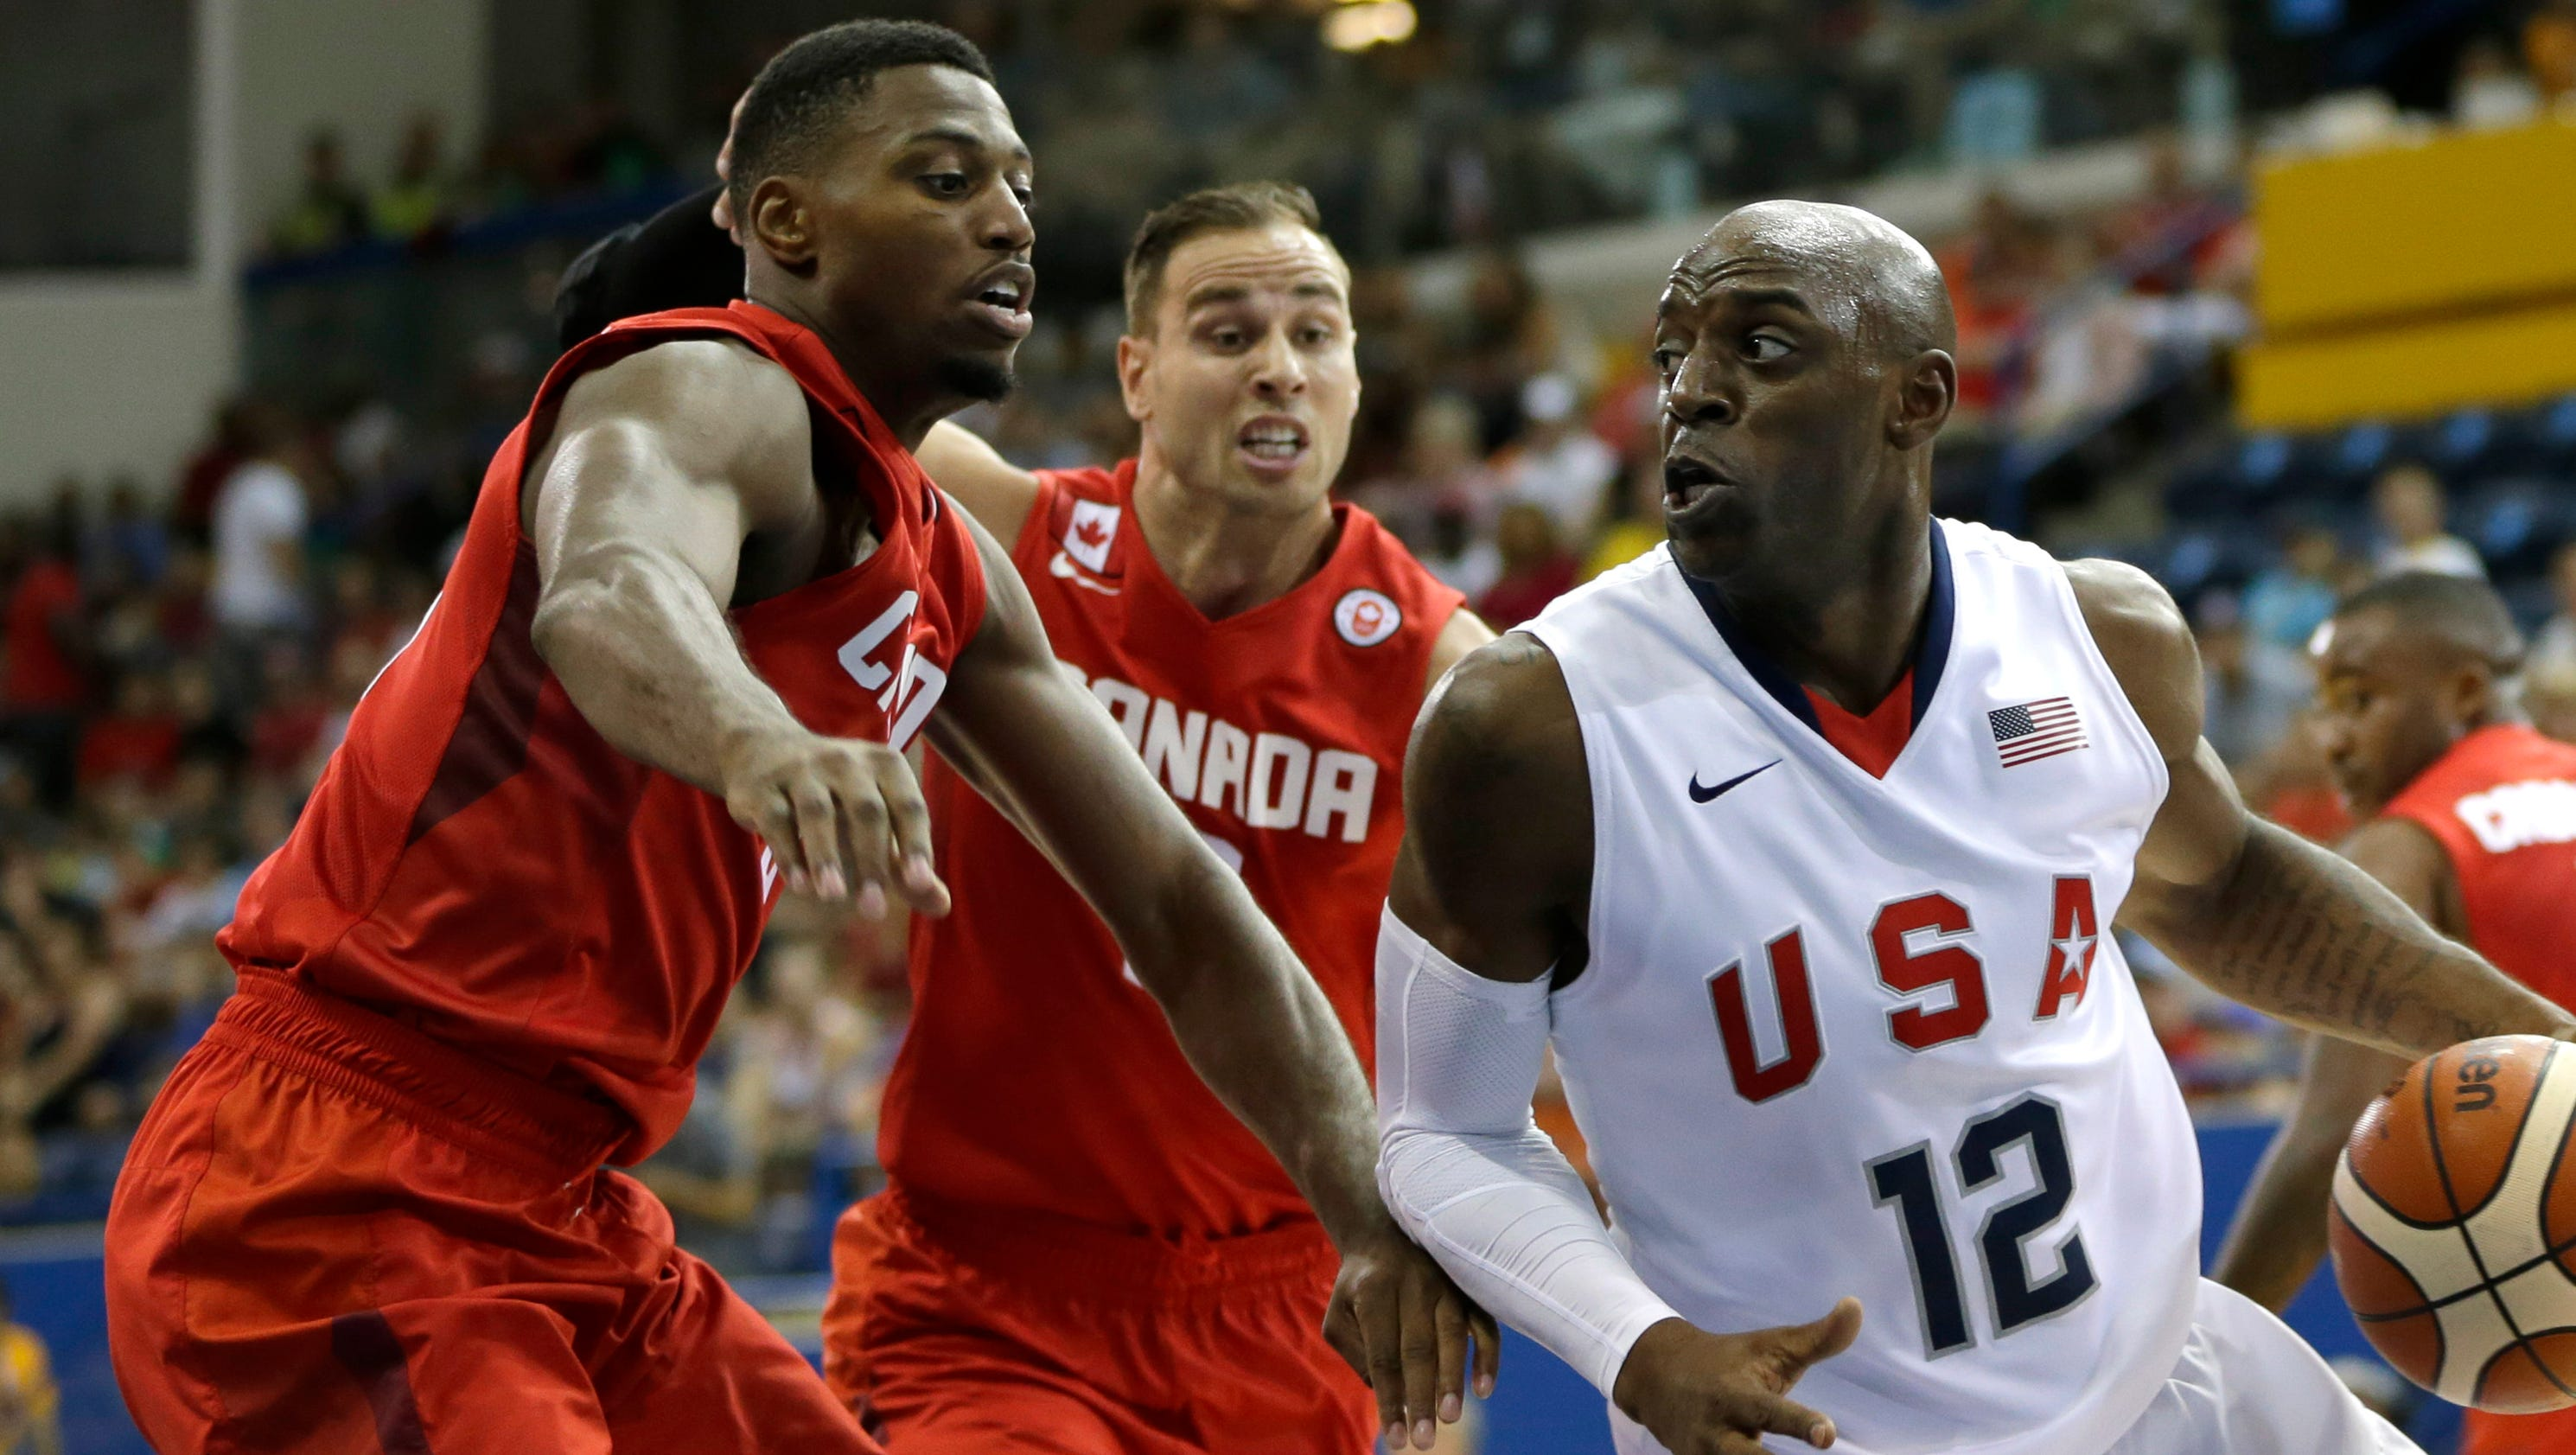 USA falls in Pan Am basketball semis to Canada; Denzel Valentine nets 11